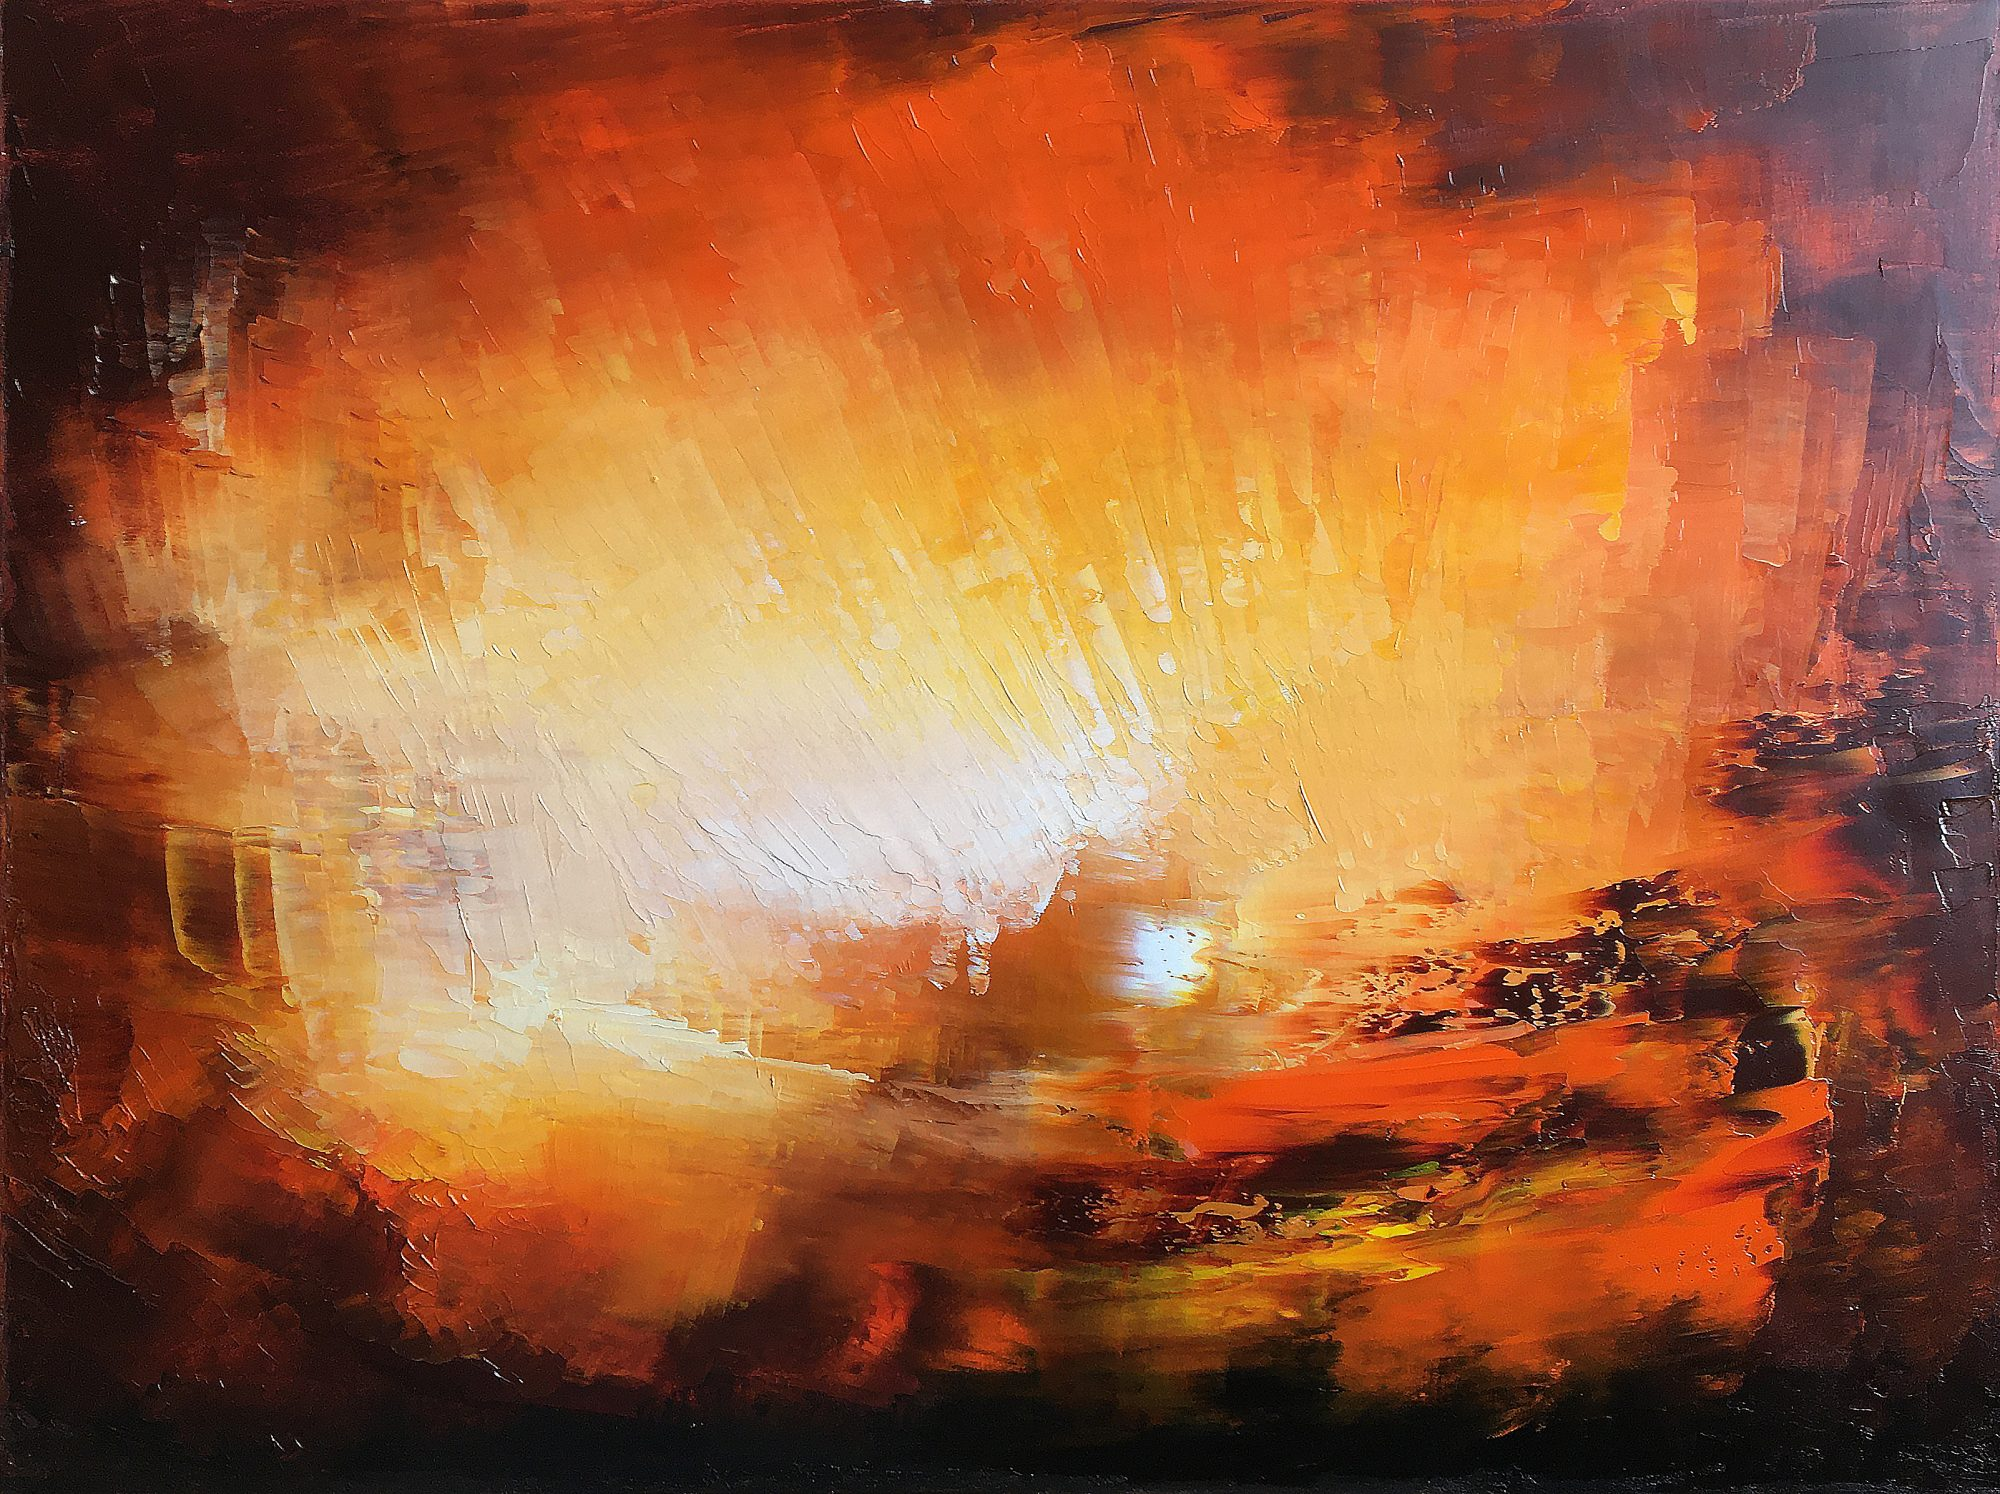 Vulcania - oil on canvas abstract landscape painting by Paul Kingsley Squire